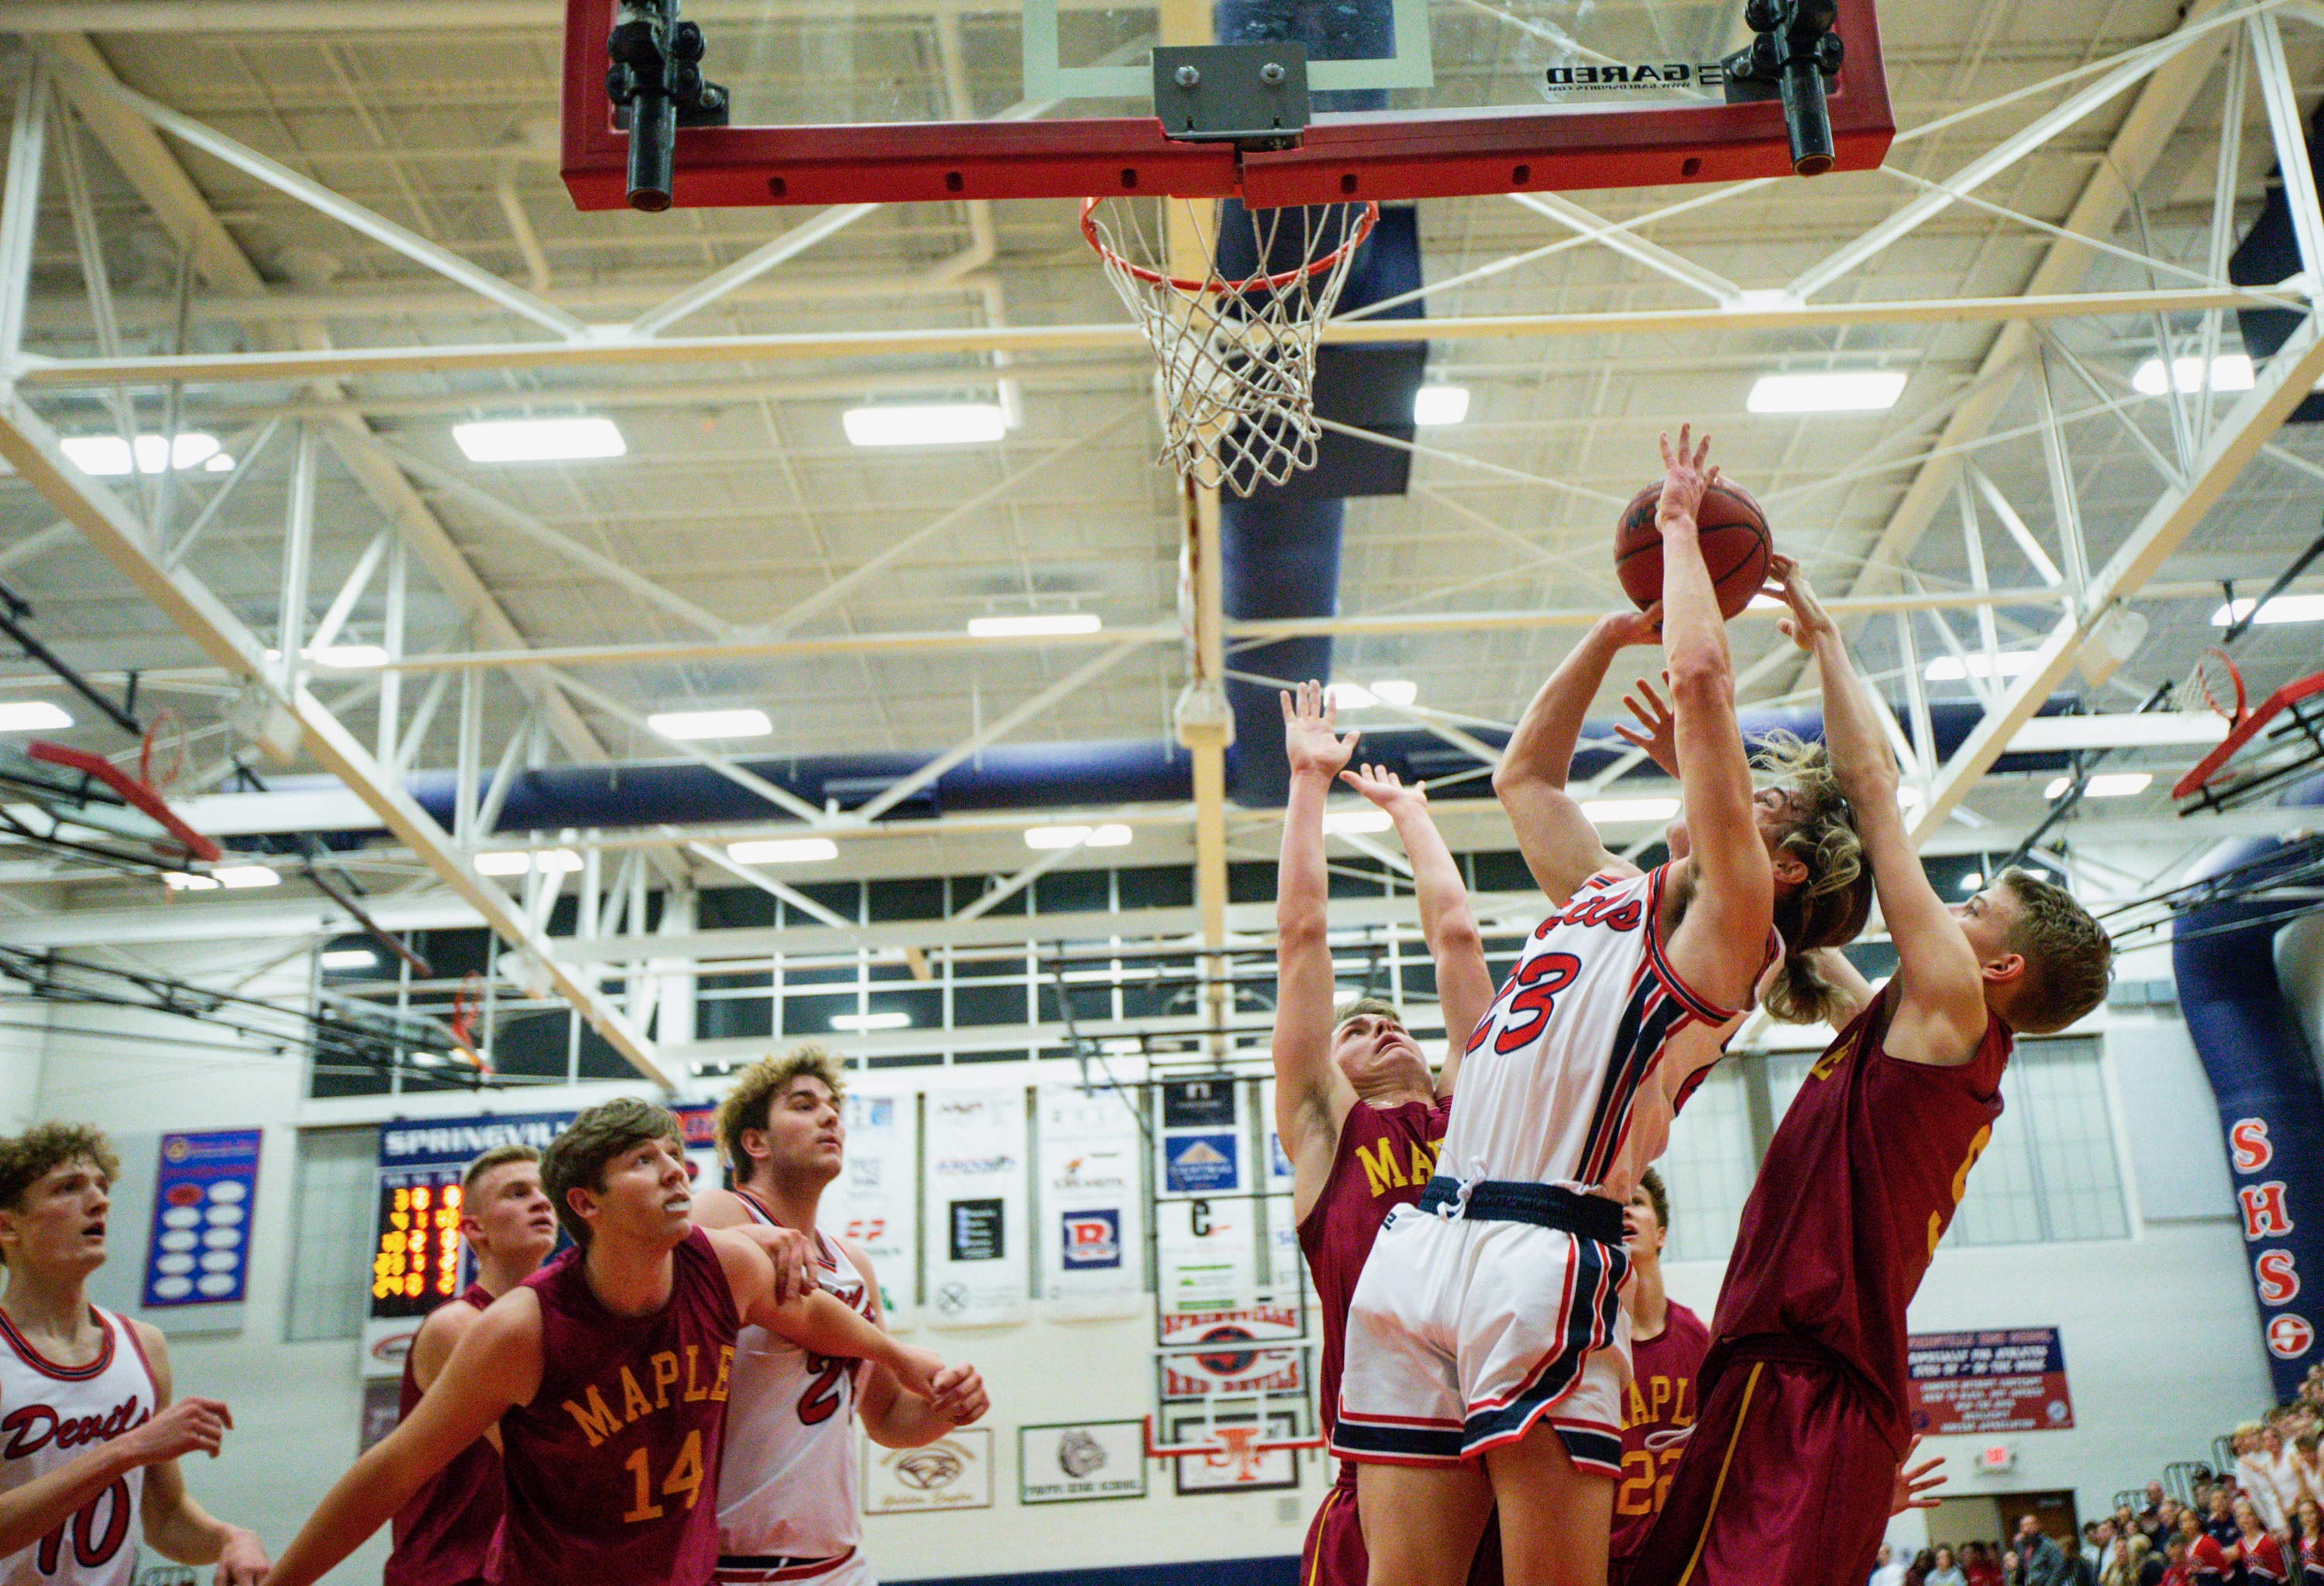 Red Devil senior guard Payton Murphy (23) attempts to score a basket at Springville High School in Springville on Friday, Jan. 24, 2020. The Springville Red Devils defeated the Maple Mountain Golden Eagles 54-36.